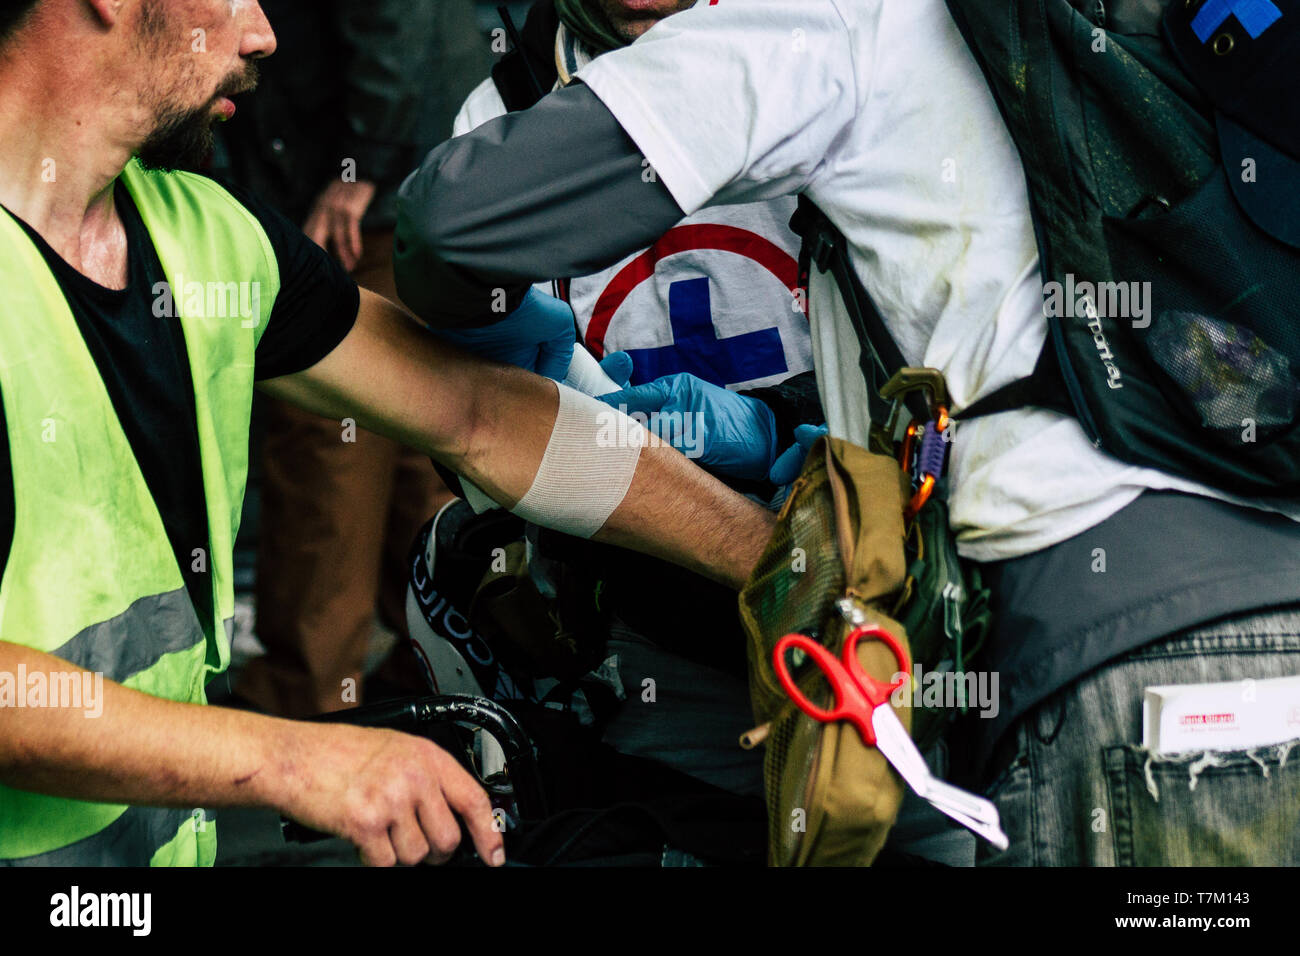 Paris France May 04, 2019 View of French street medic helping a protester injured by the riot squad of the French National Police in the street during Stock Photo